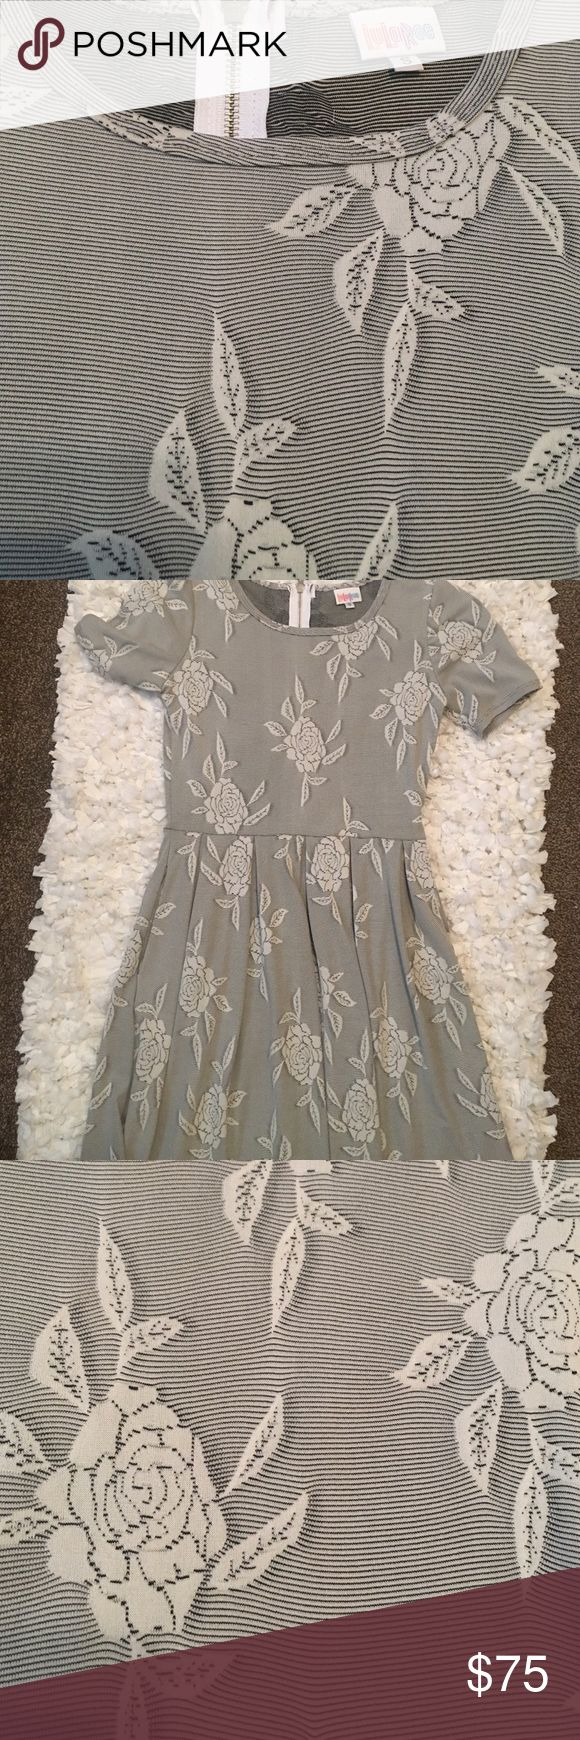 LuLaRoe Amelia LuLaRoe Amelia dress, because of what they take I priced it a bit higher. Worn 1x Difficult pattern to find. LuLaRoe Dresses Midi